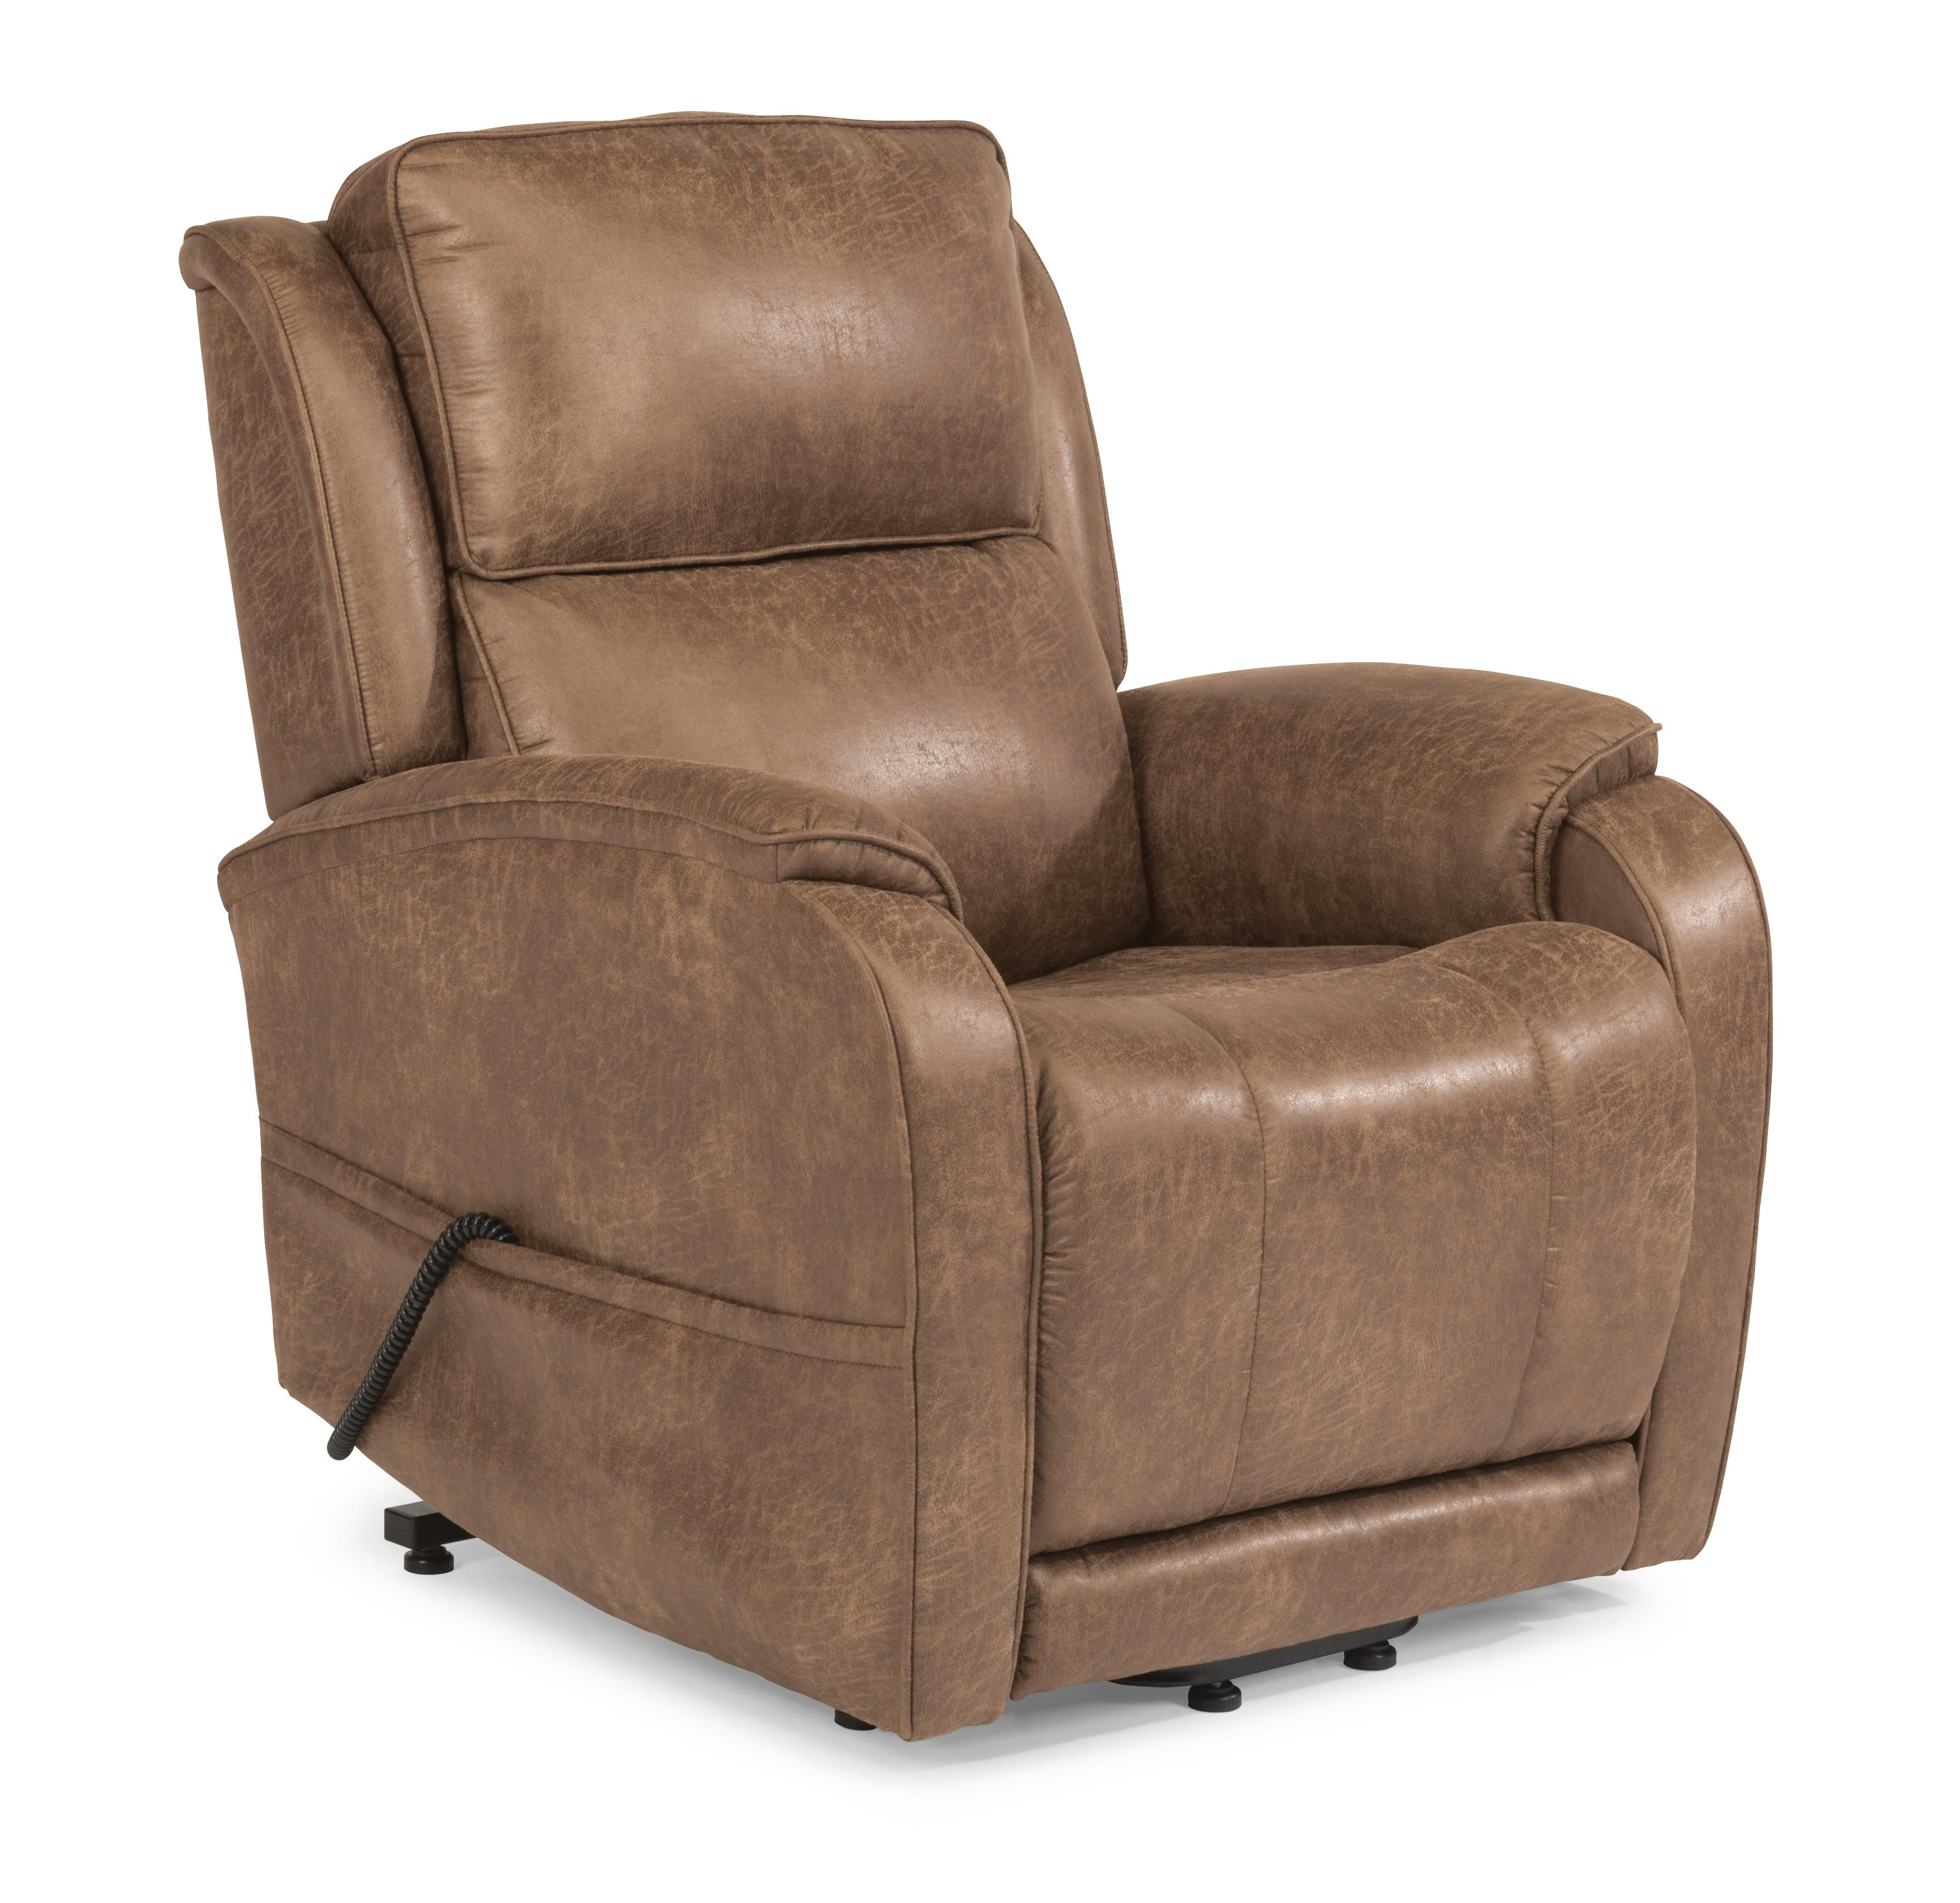 Flexsteel Latitudes Lift Chairs Power Lift Recliner - Item Number: 1905-55-861-72